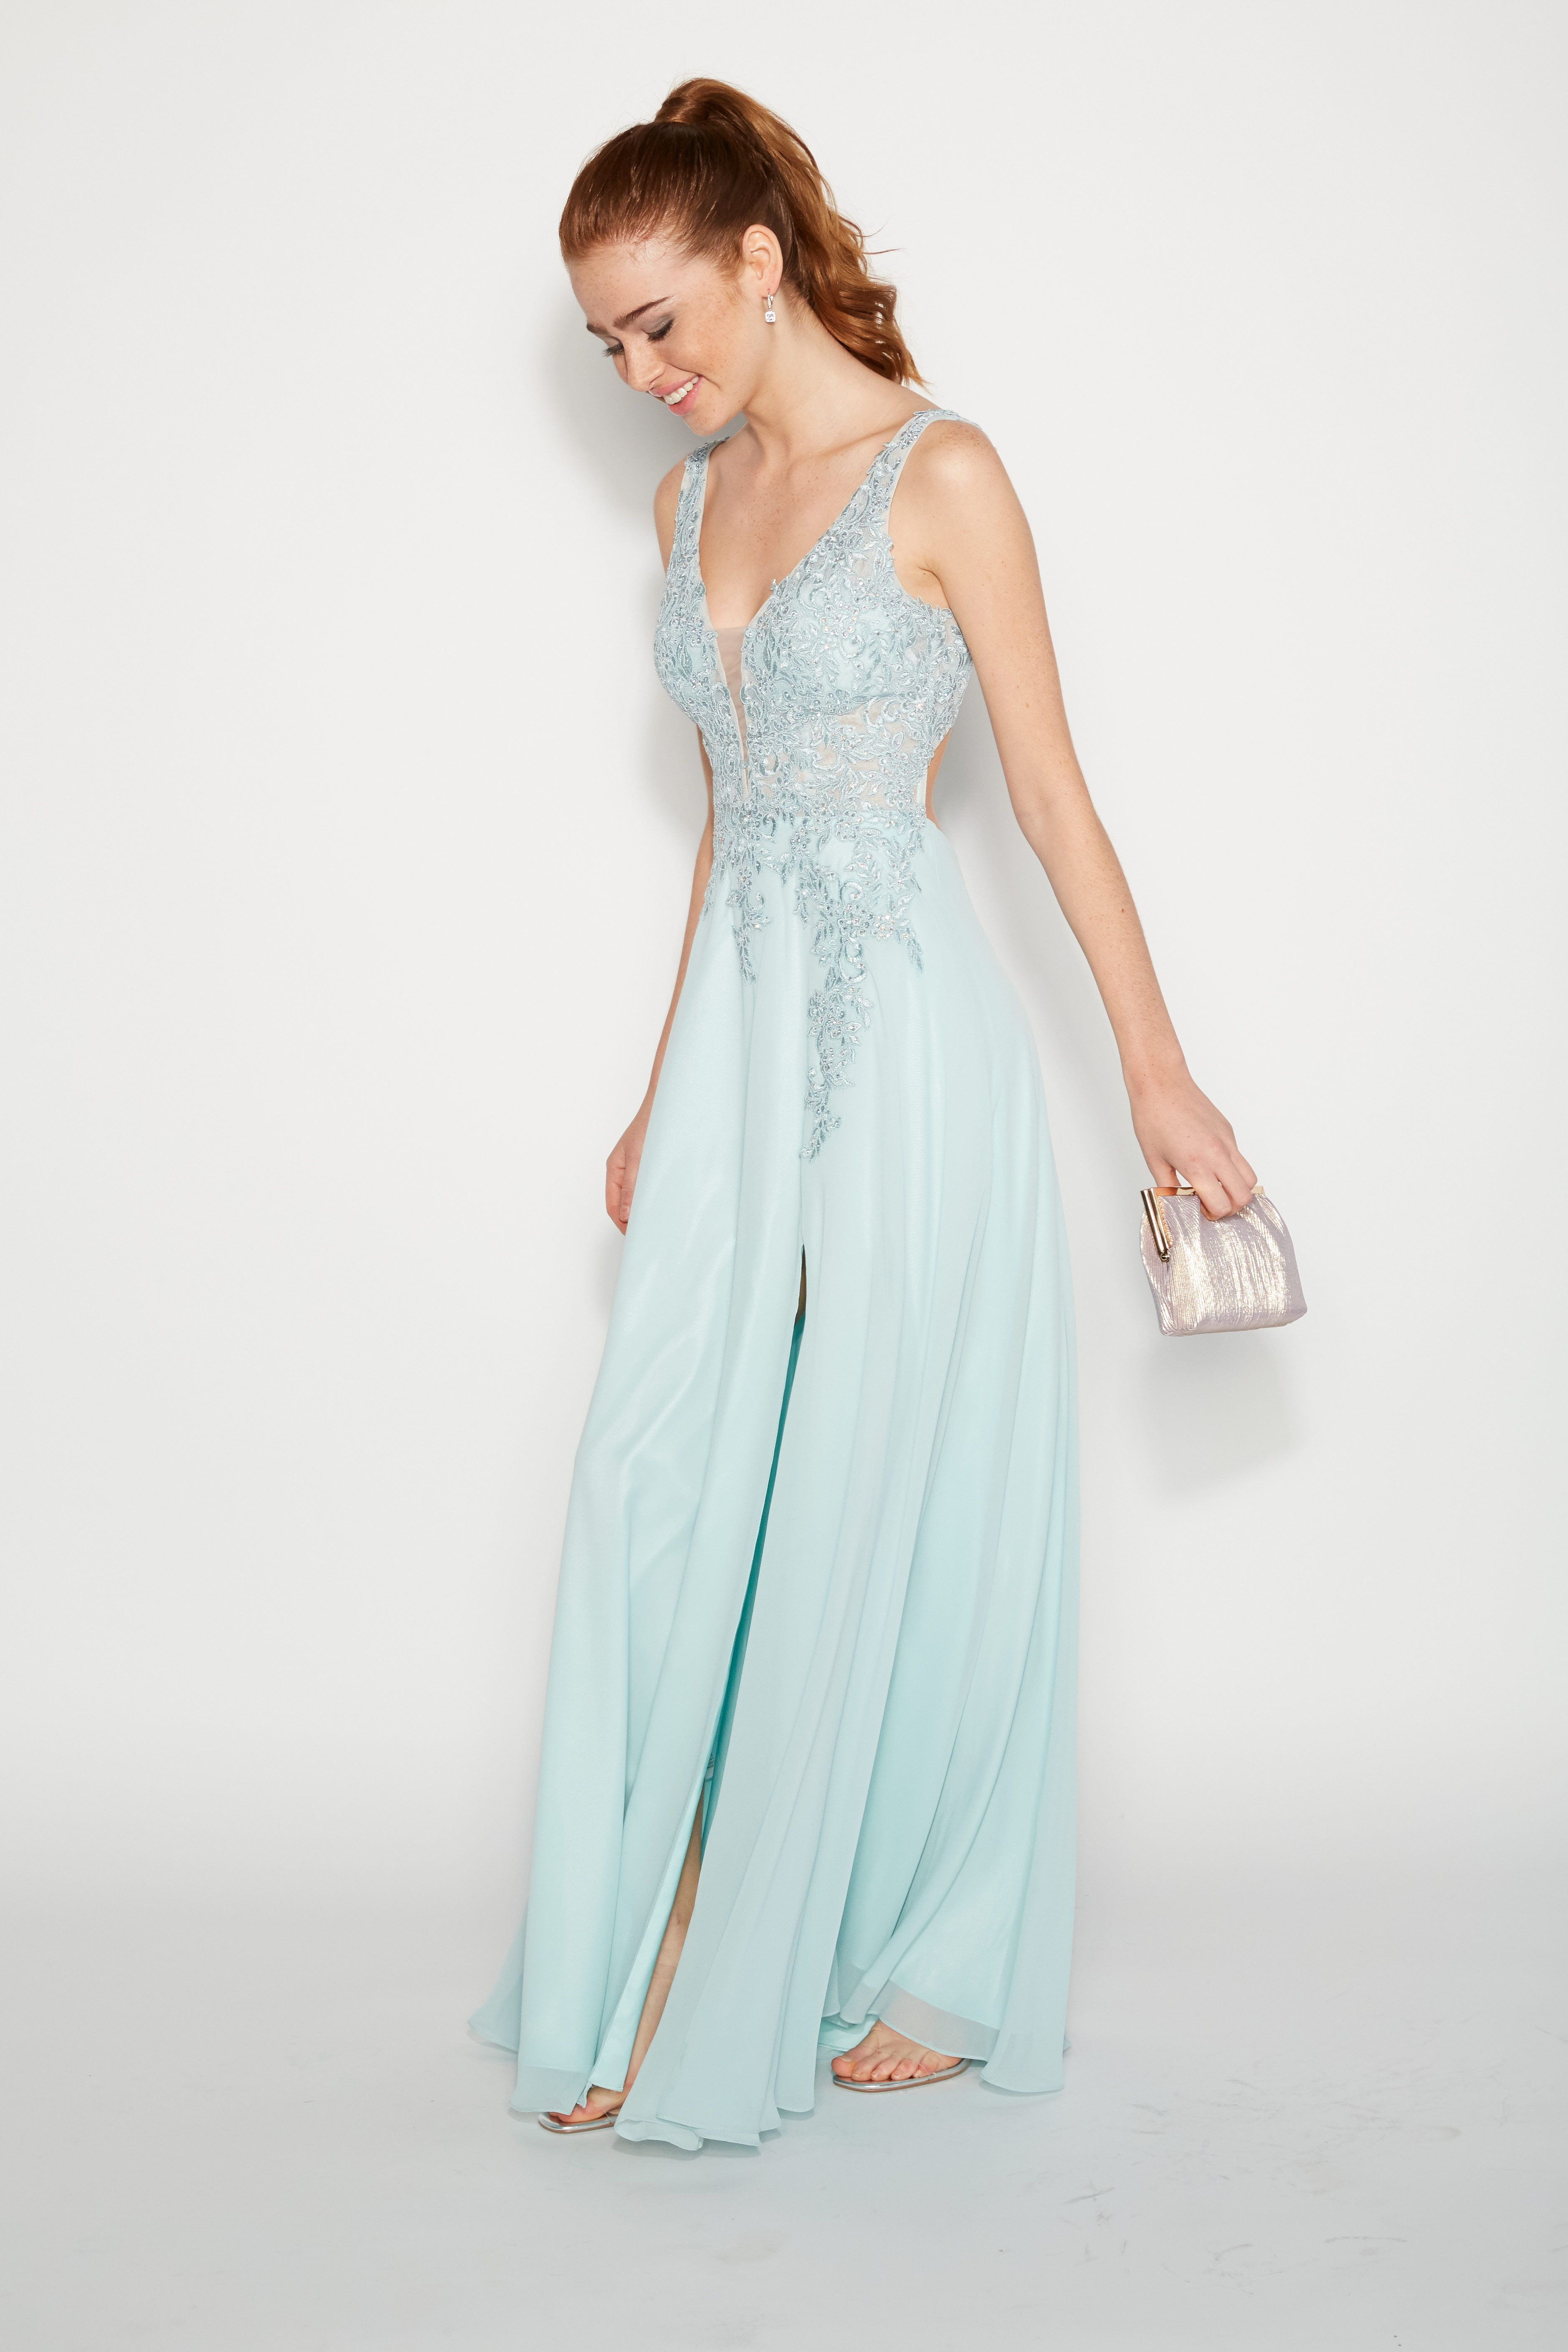 Prom Perfected Shop Now Formal Dresses Petite Formal Dresses Dresses [ 5632 x 3755 Pixel ]